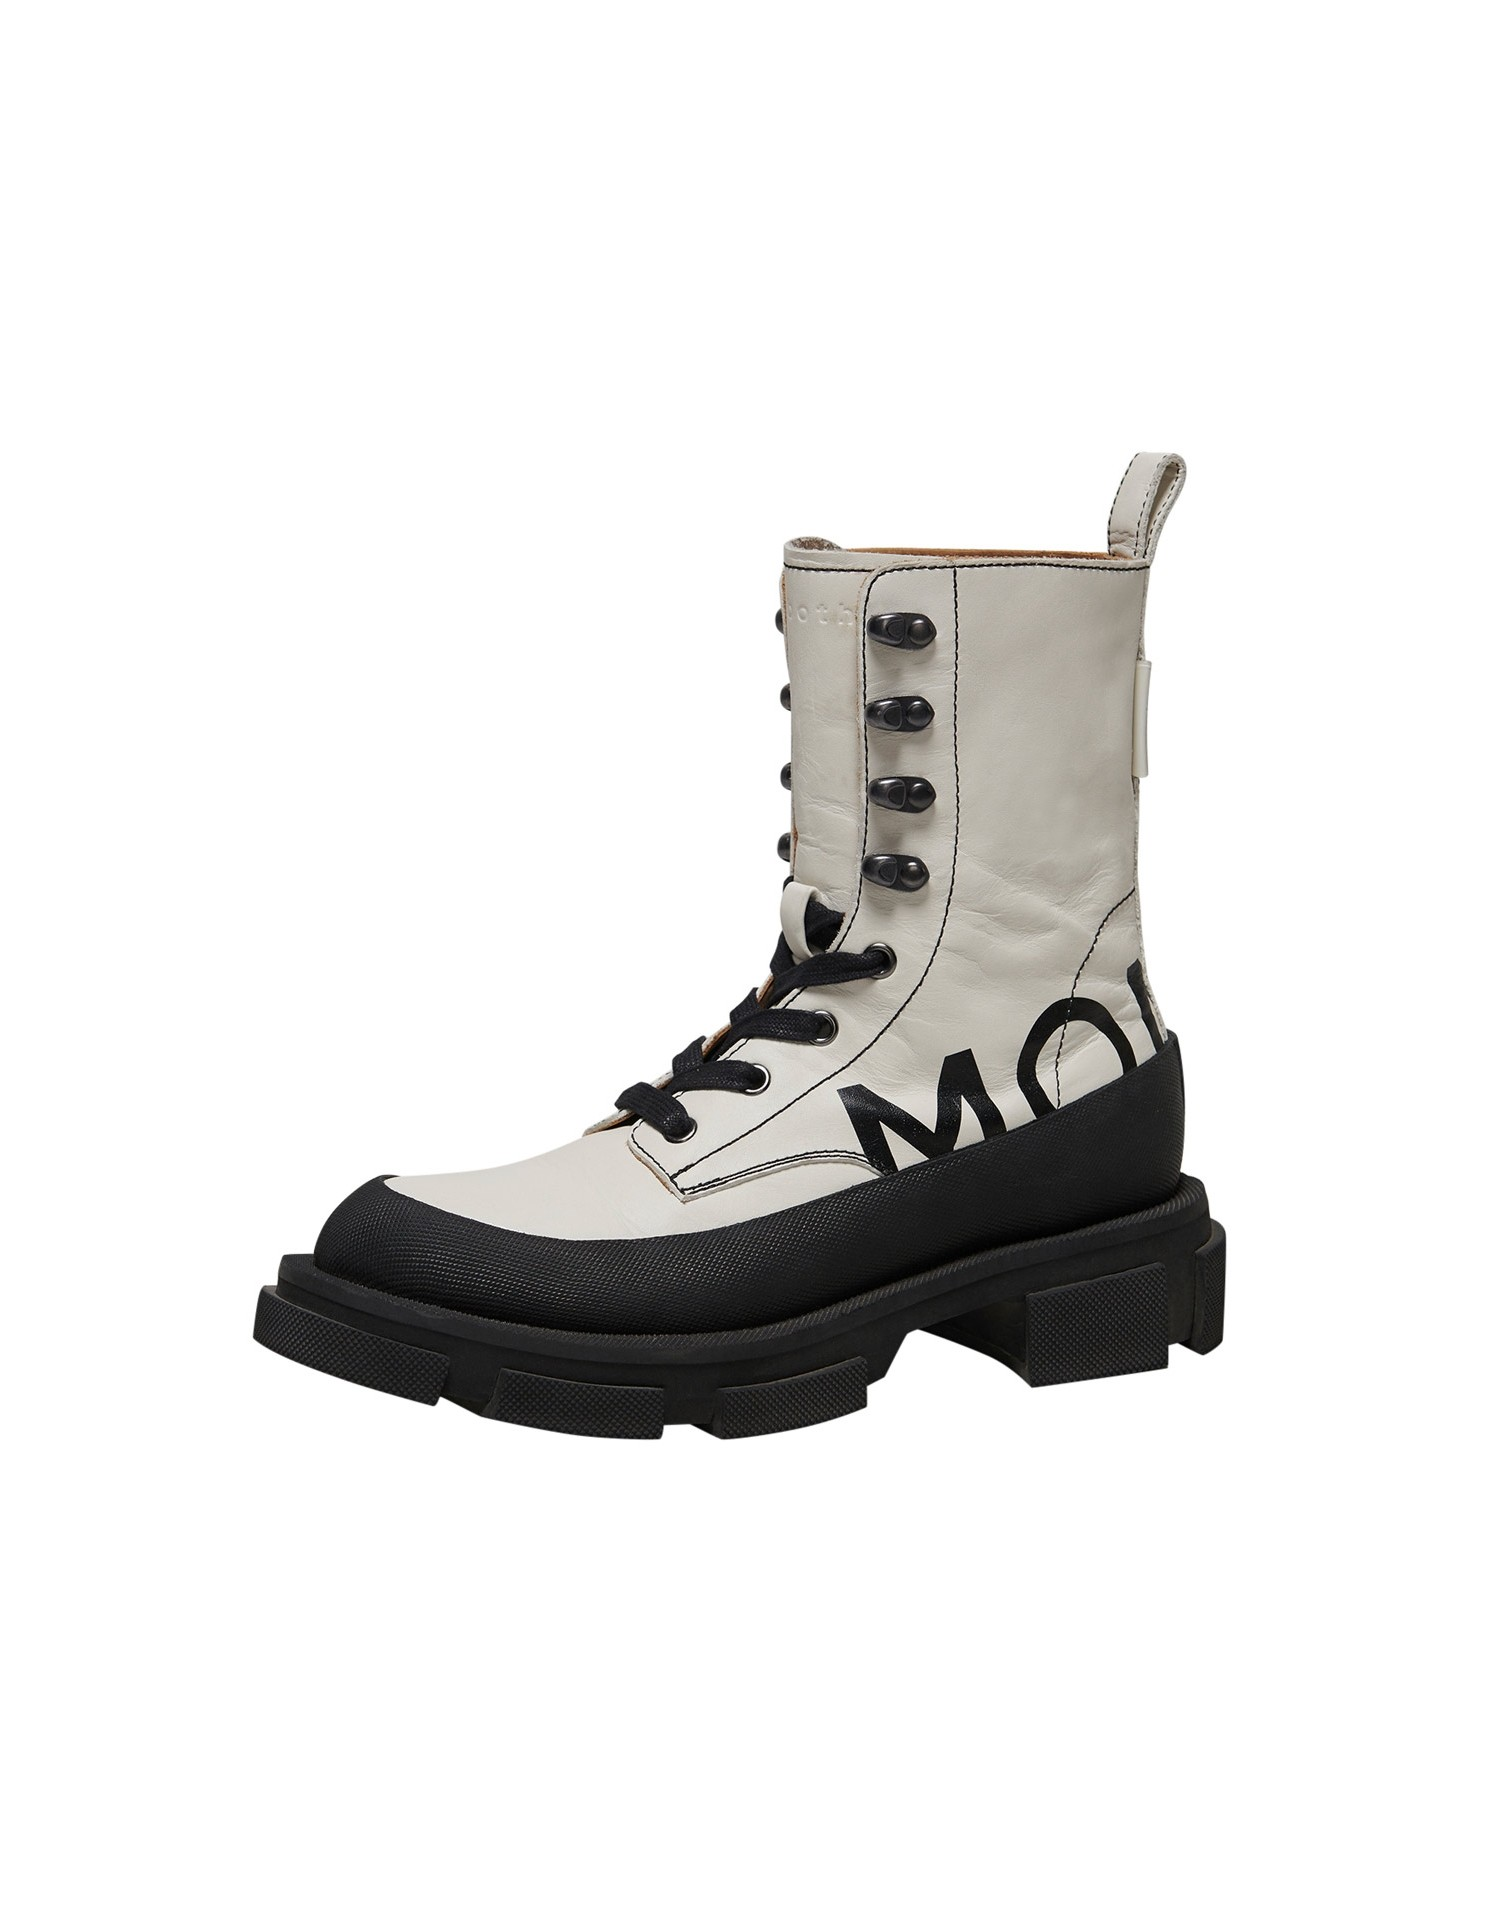 Both x MONSE Gao High Boots in White and Black Left Side Angle View